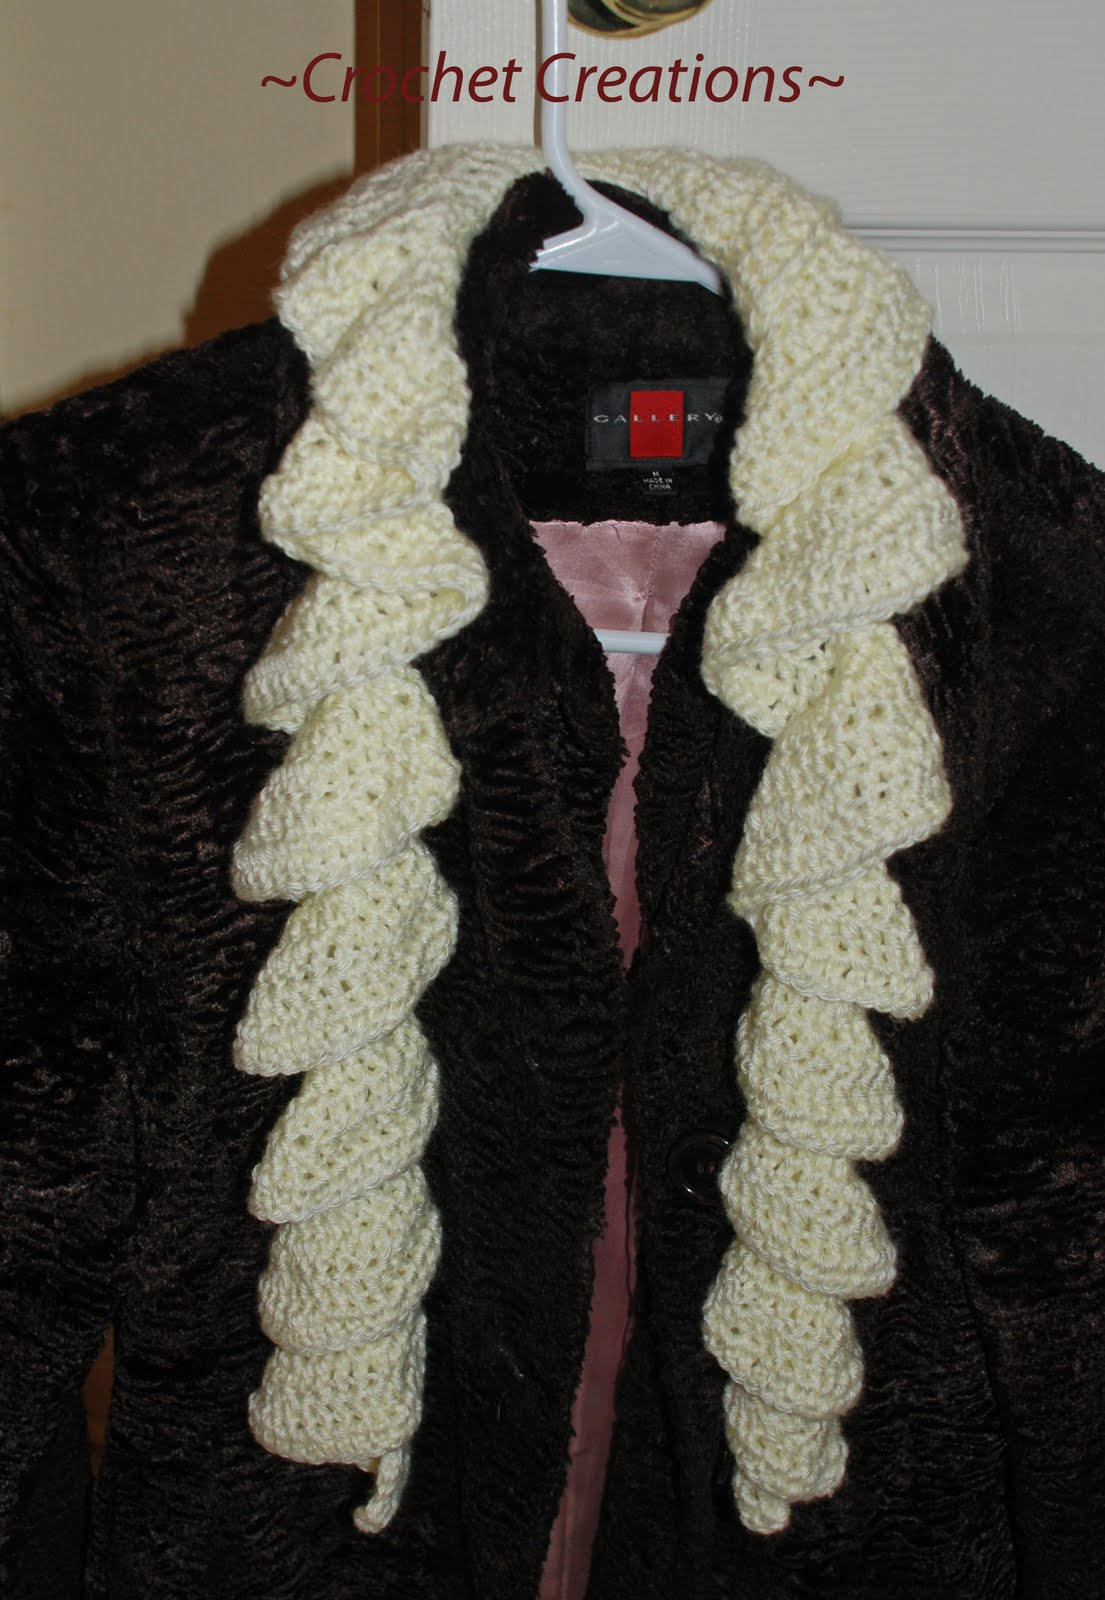 Crochet Cabana's Crafty Corral: Chevron DC scarf